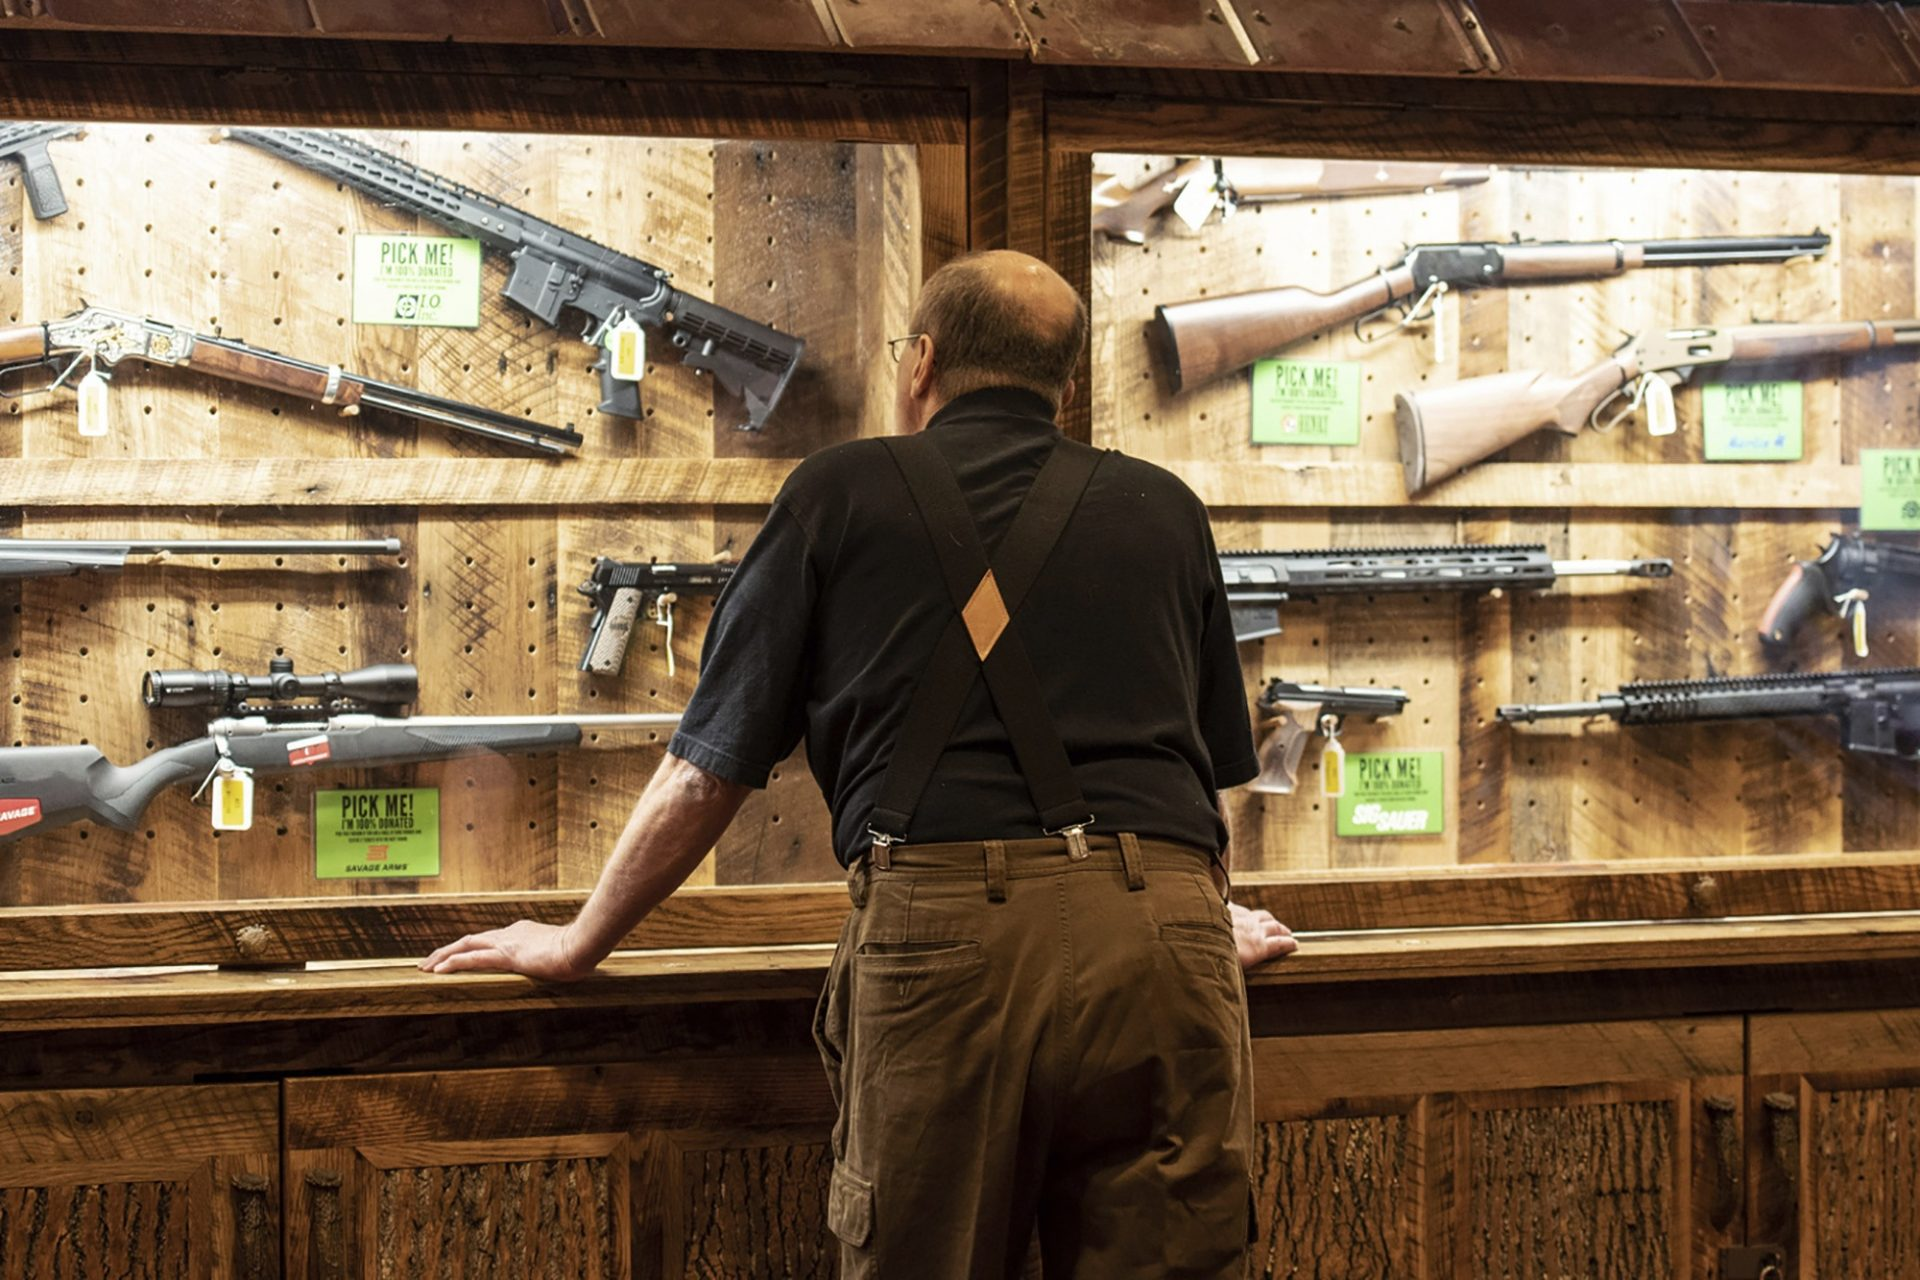 FILE - In this April 25, 2019, file photo, a man looks at cases of firearms in the halls of the Indianapolis Convention Center where the National Rifle Association will be holding its 148th annual meeting in Indianapolis. The number of background checks conducted by federal authorities is on pace to break a record by the end of this year.